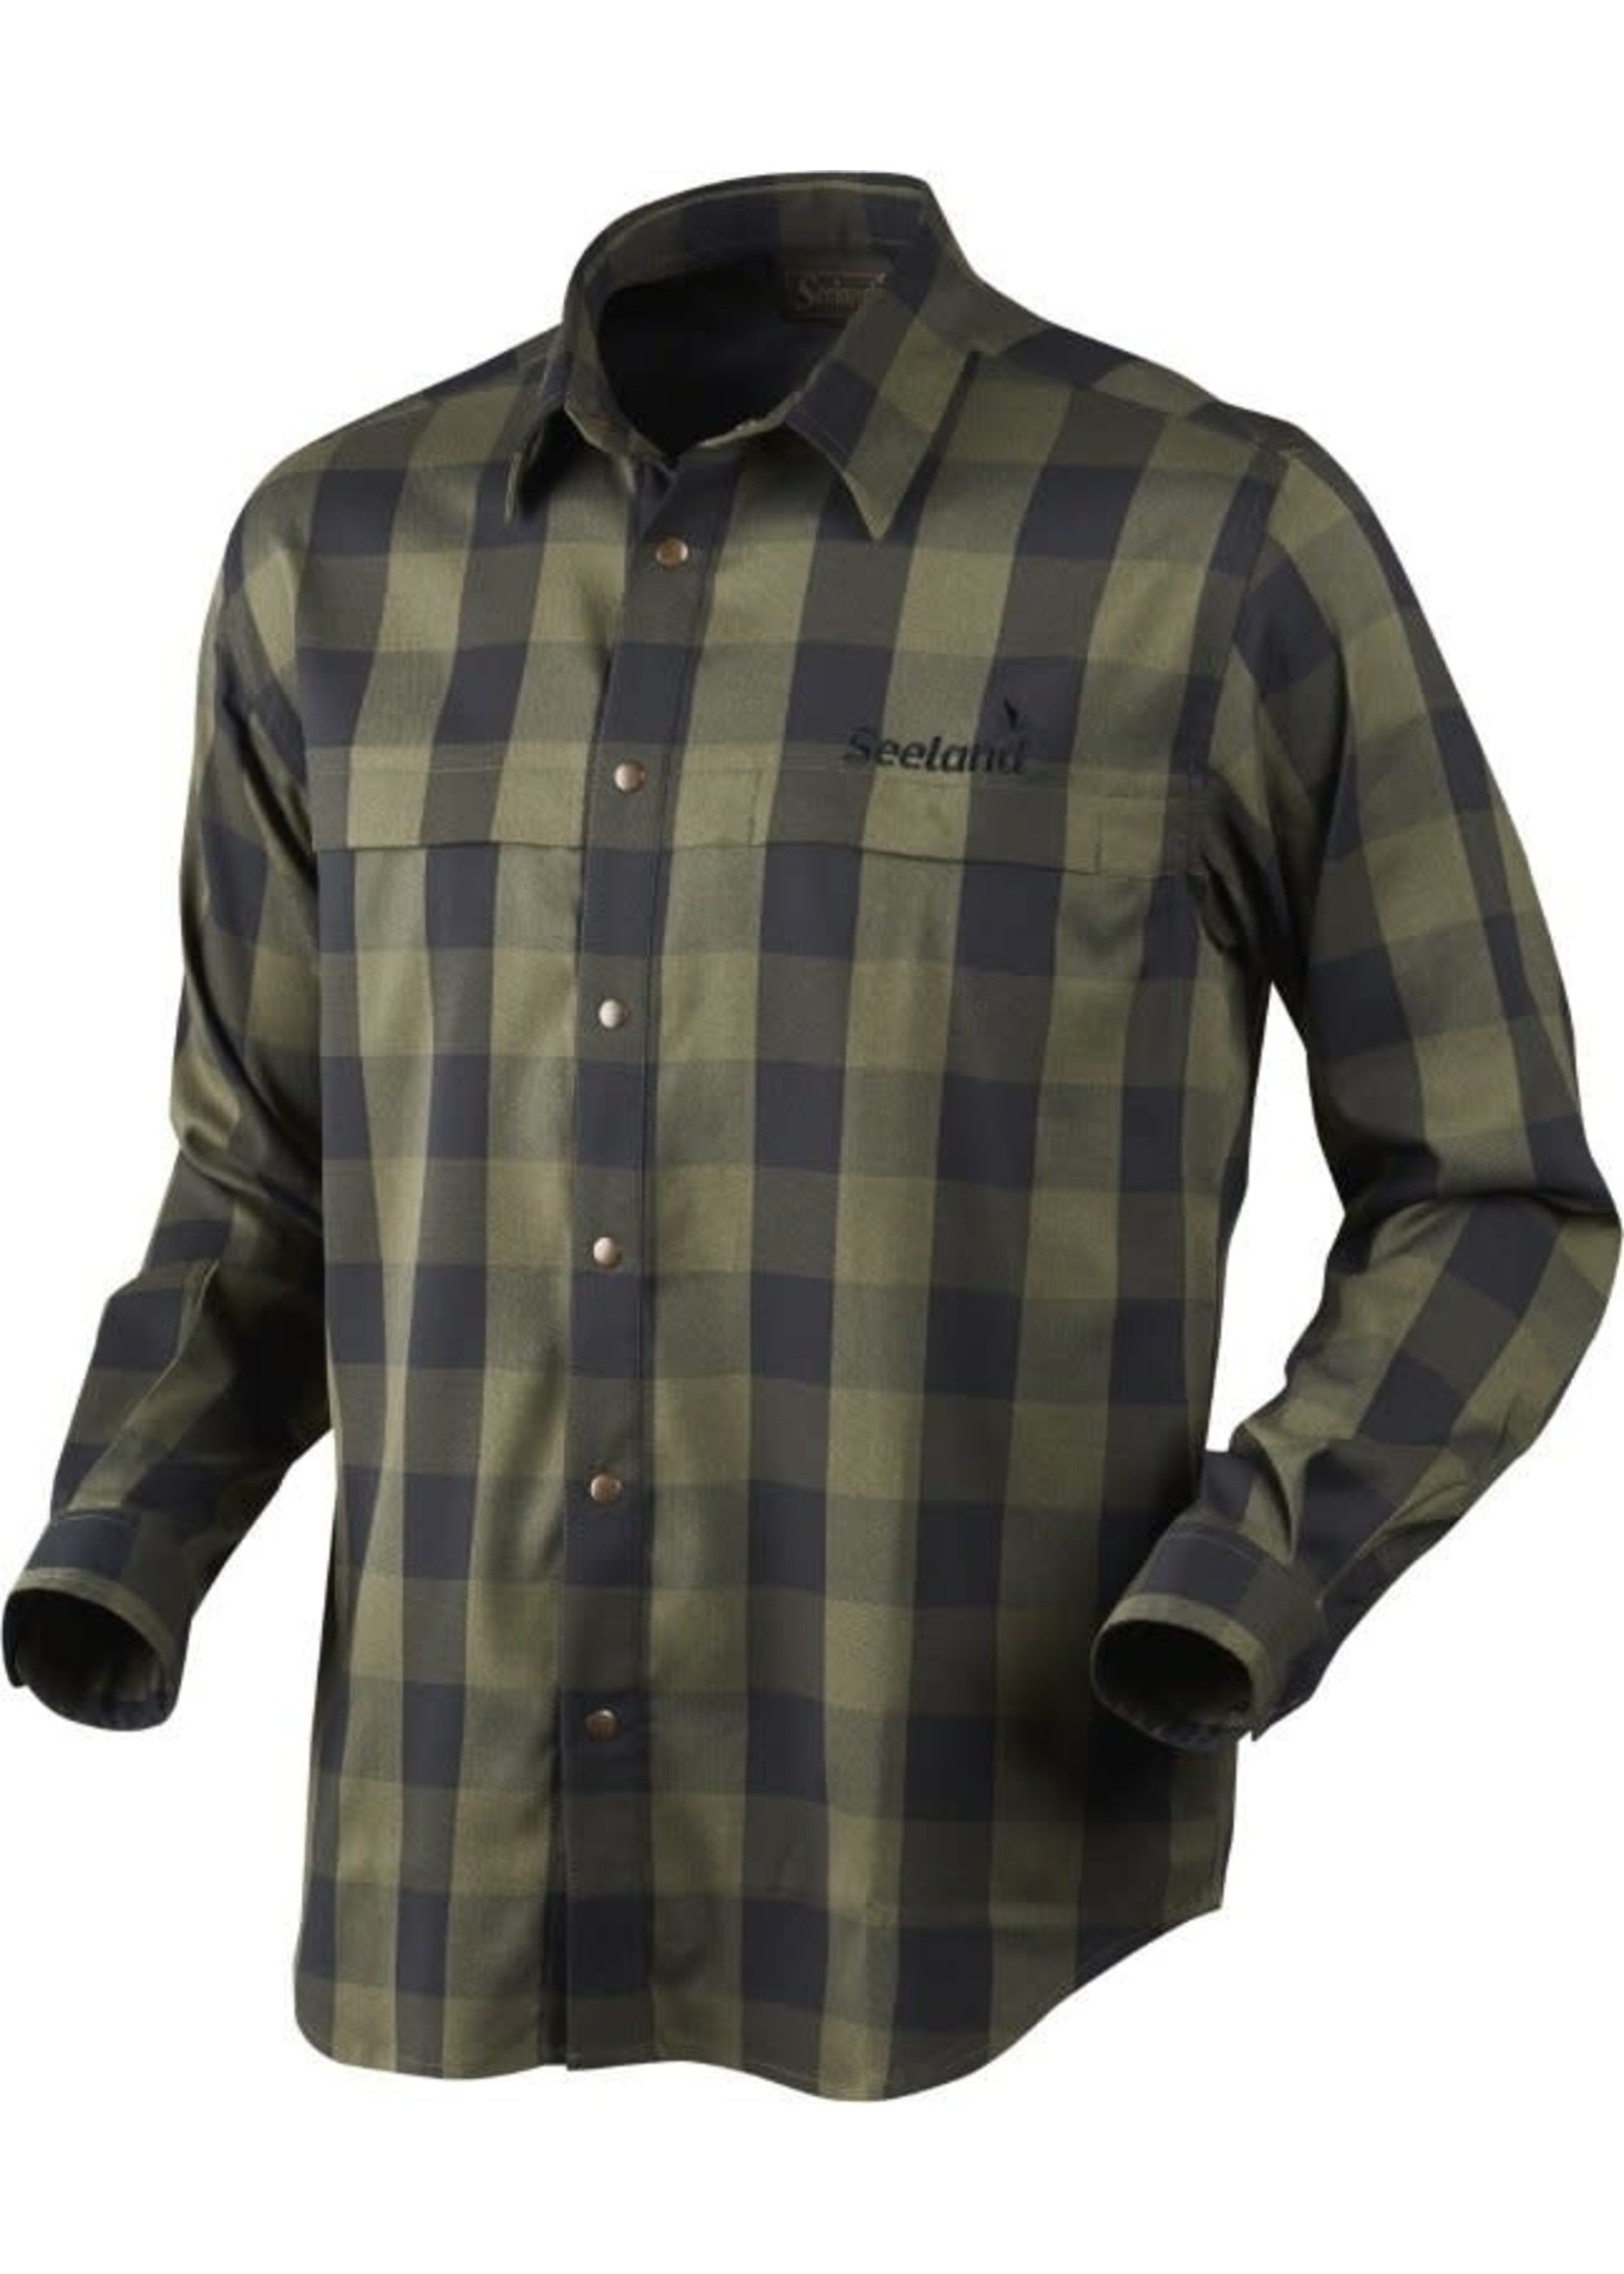 SEELAND TIMBER CHECK SHIRT